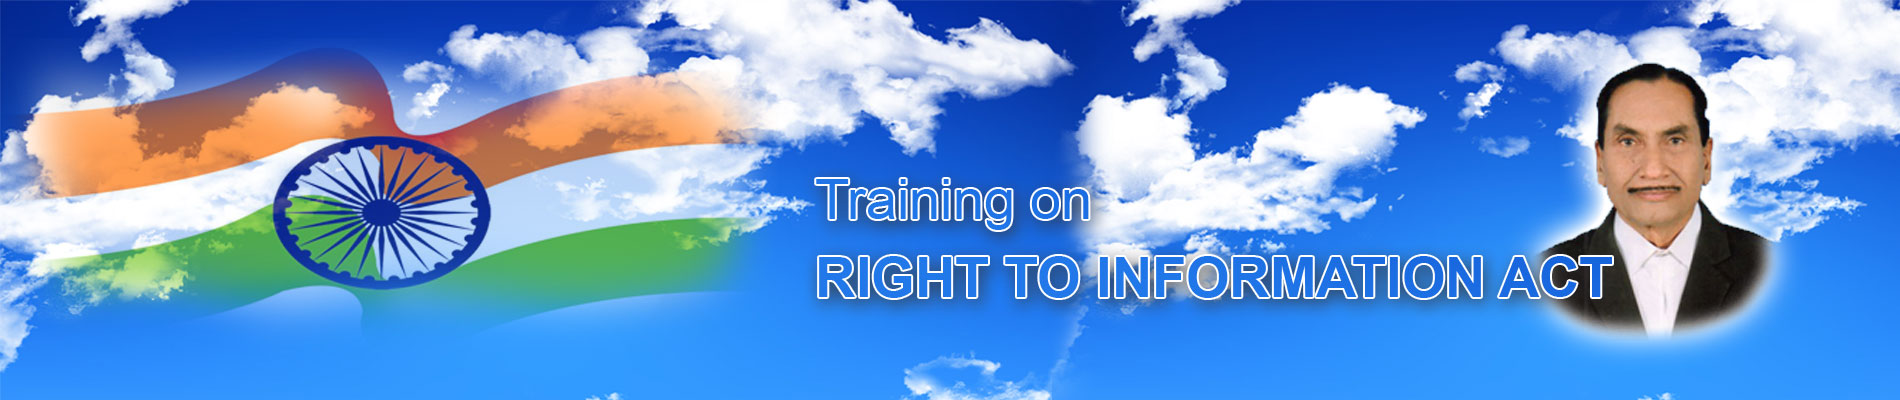 Right to Information Act (India) | Training on RTI | RTI Training